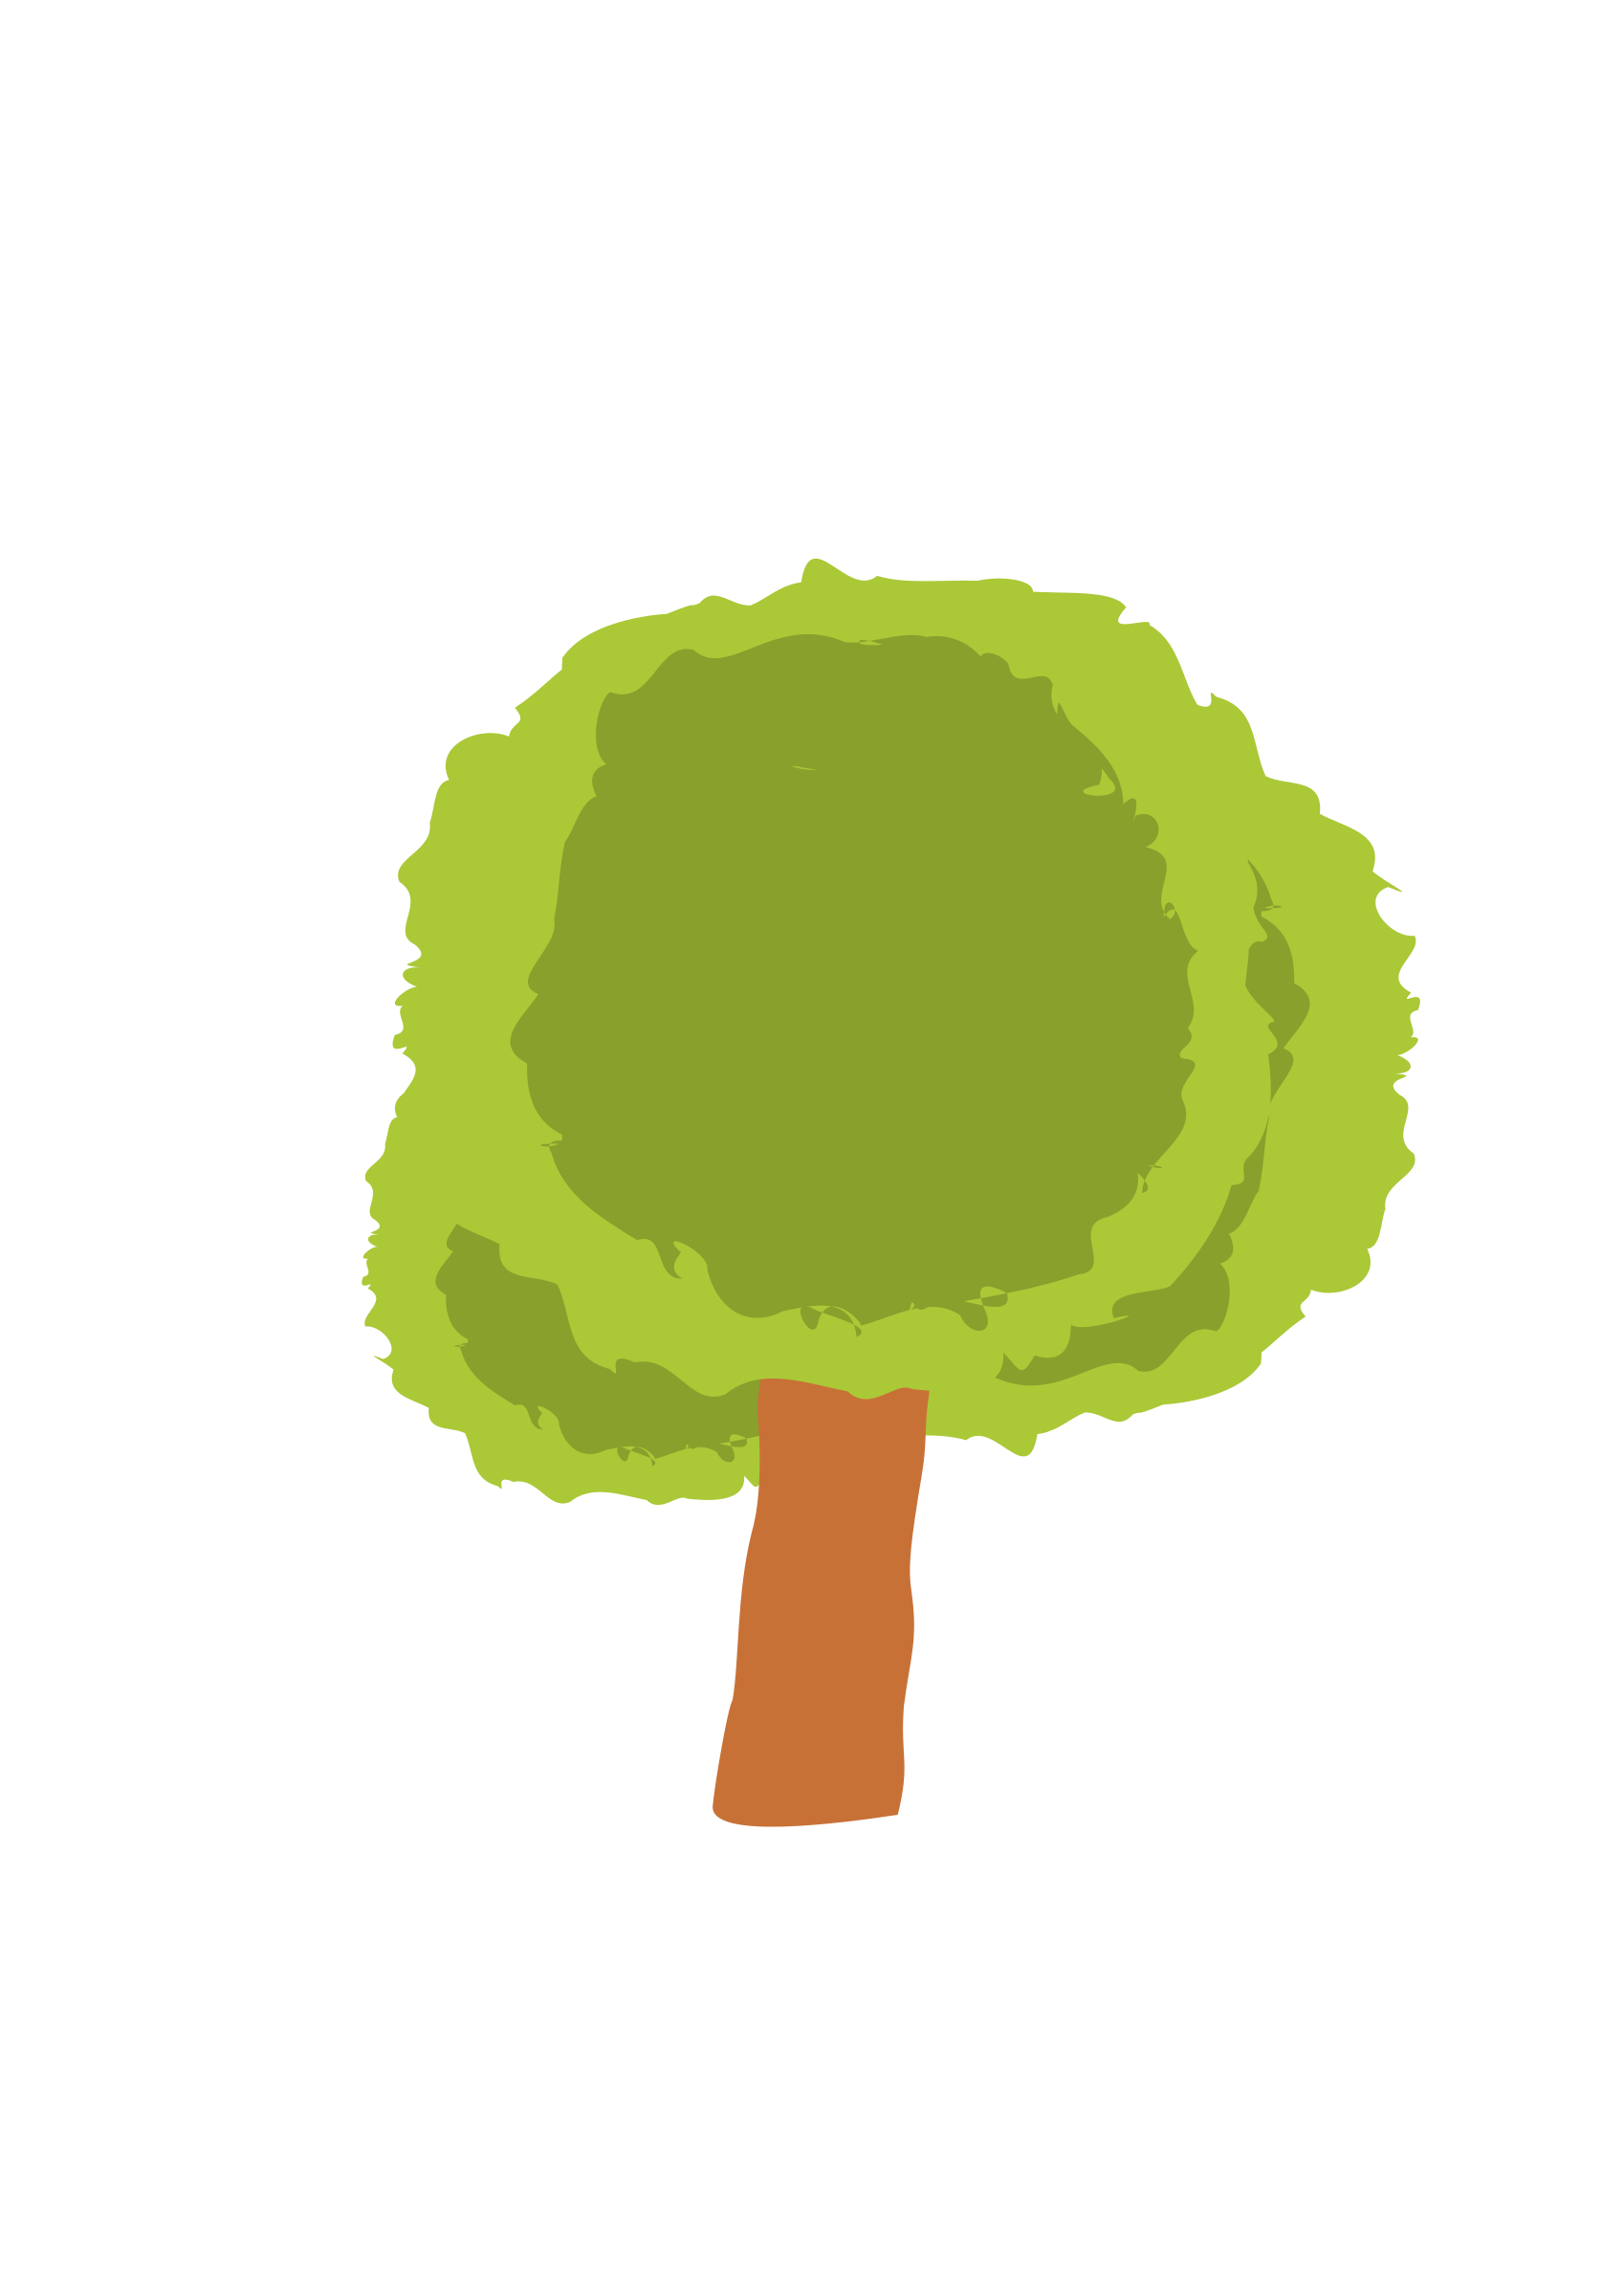 By ejmillan created for. Environment clipart short tree